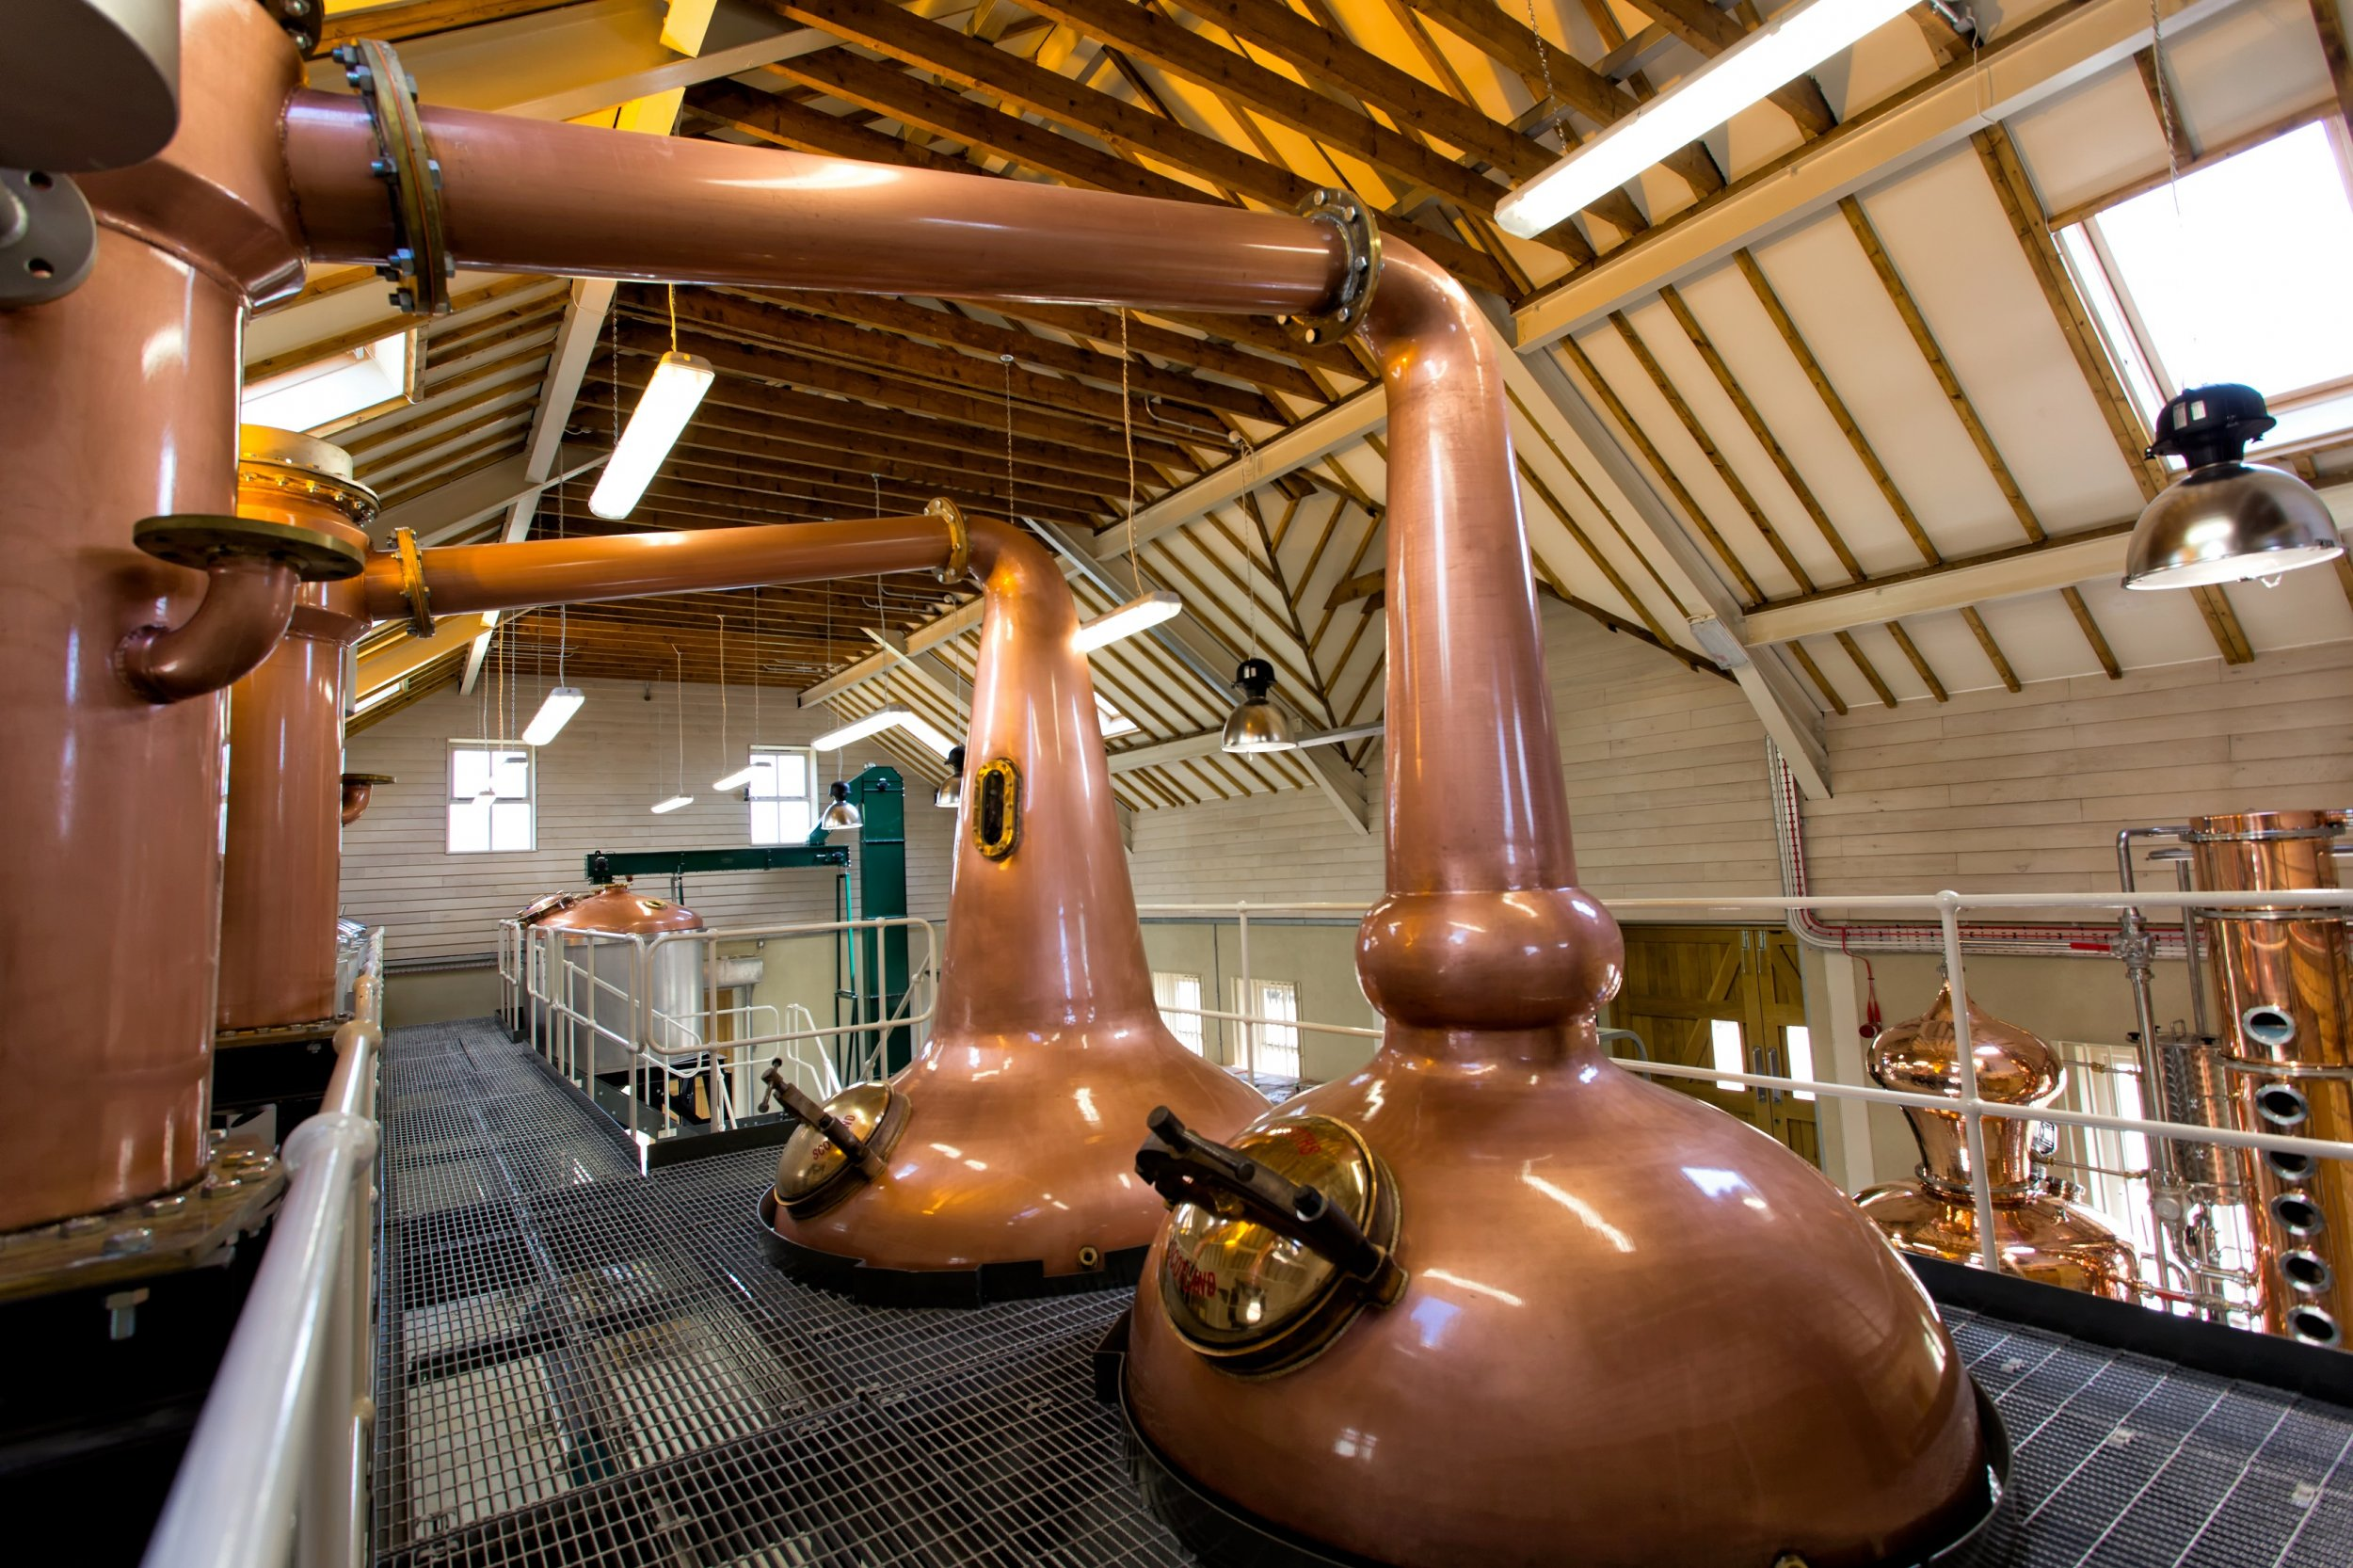 The_Cotswold_Distilling_Company_Ltd_MG_9949